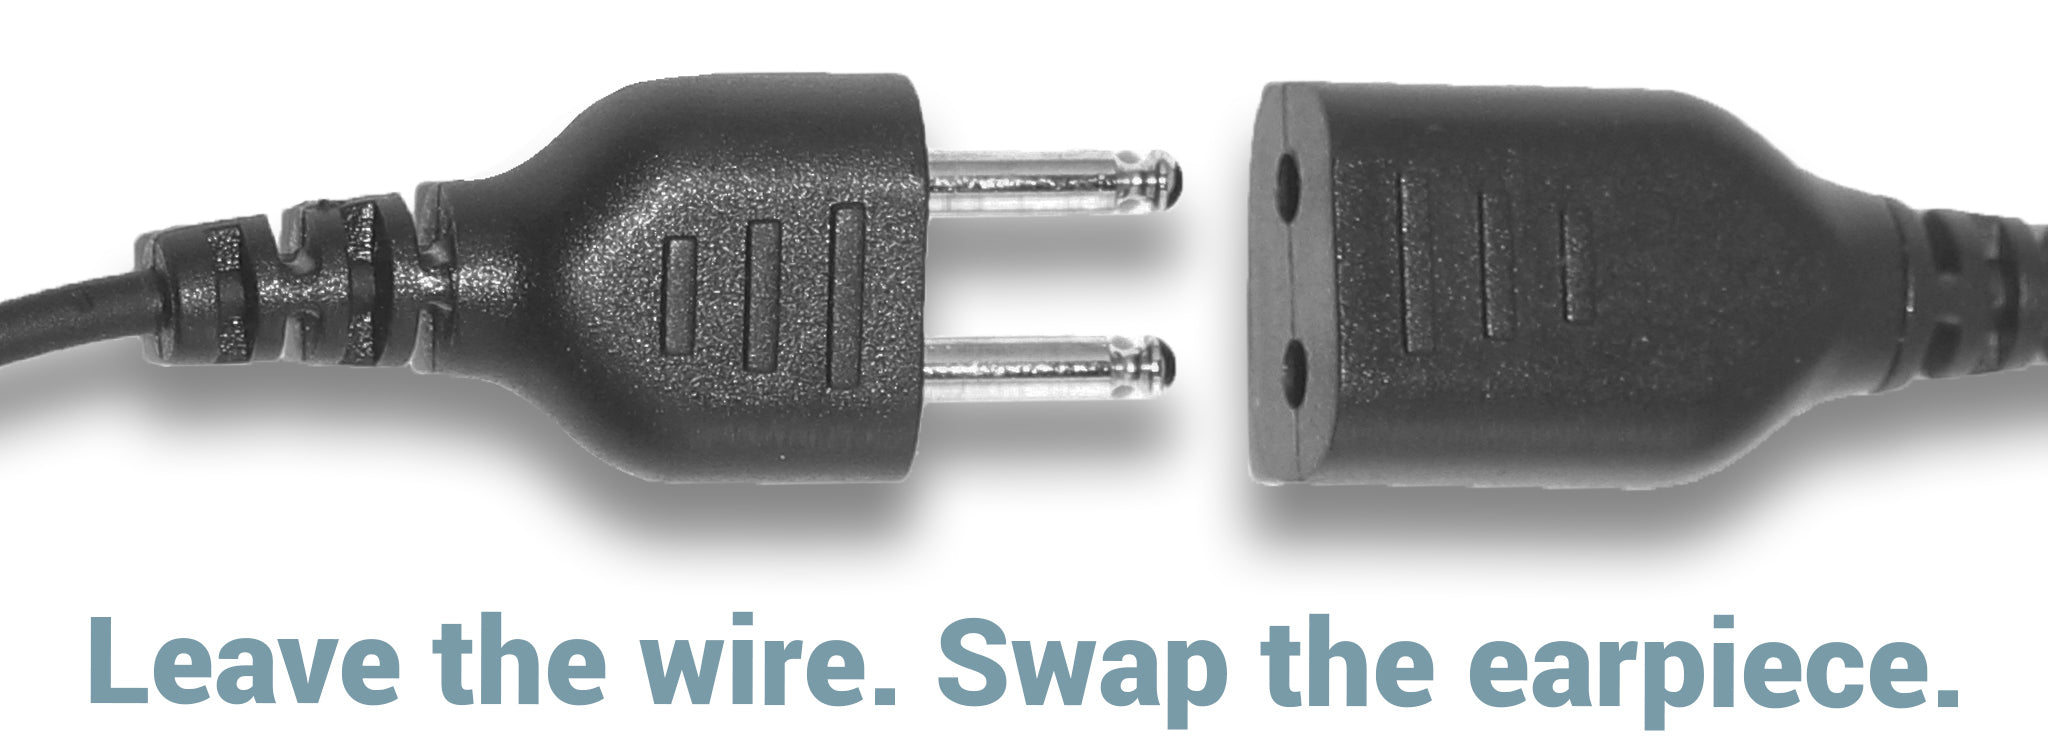 Leave the wire. Swap the earpiece.